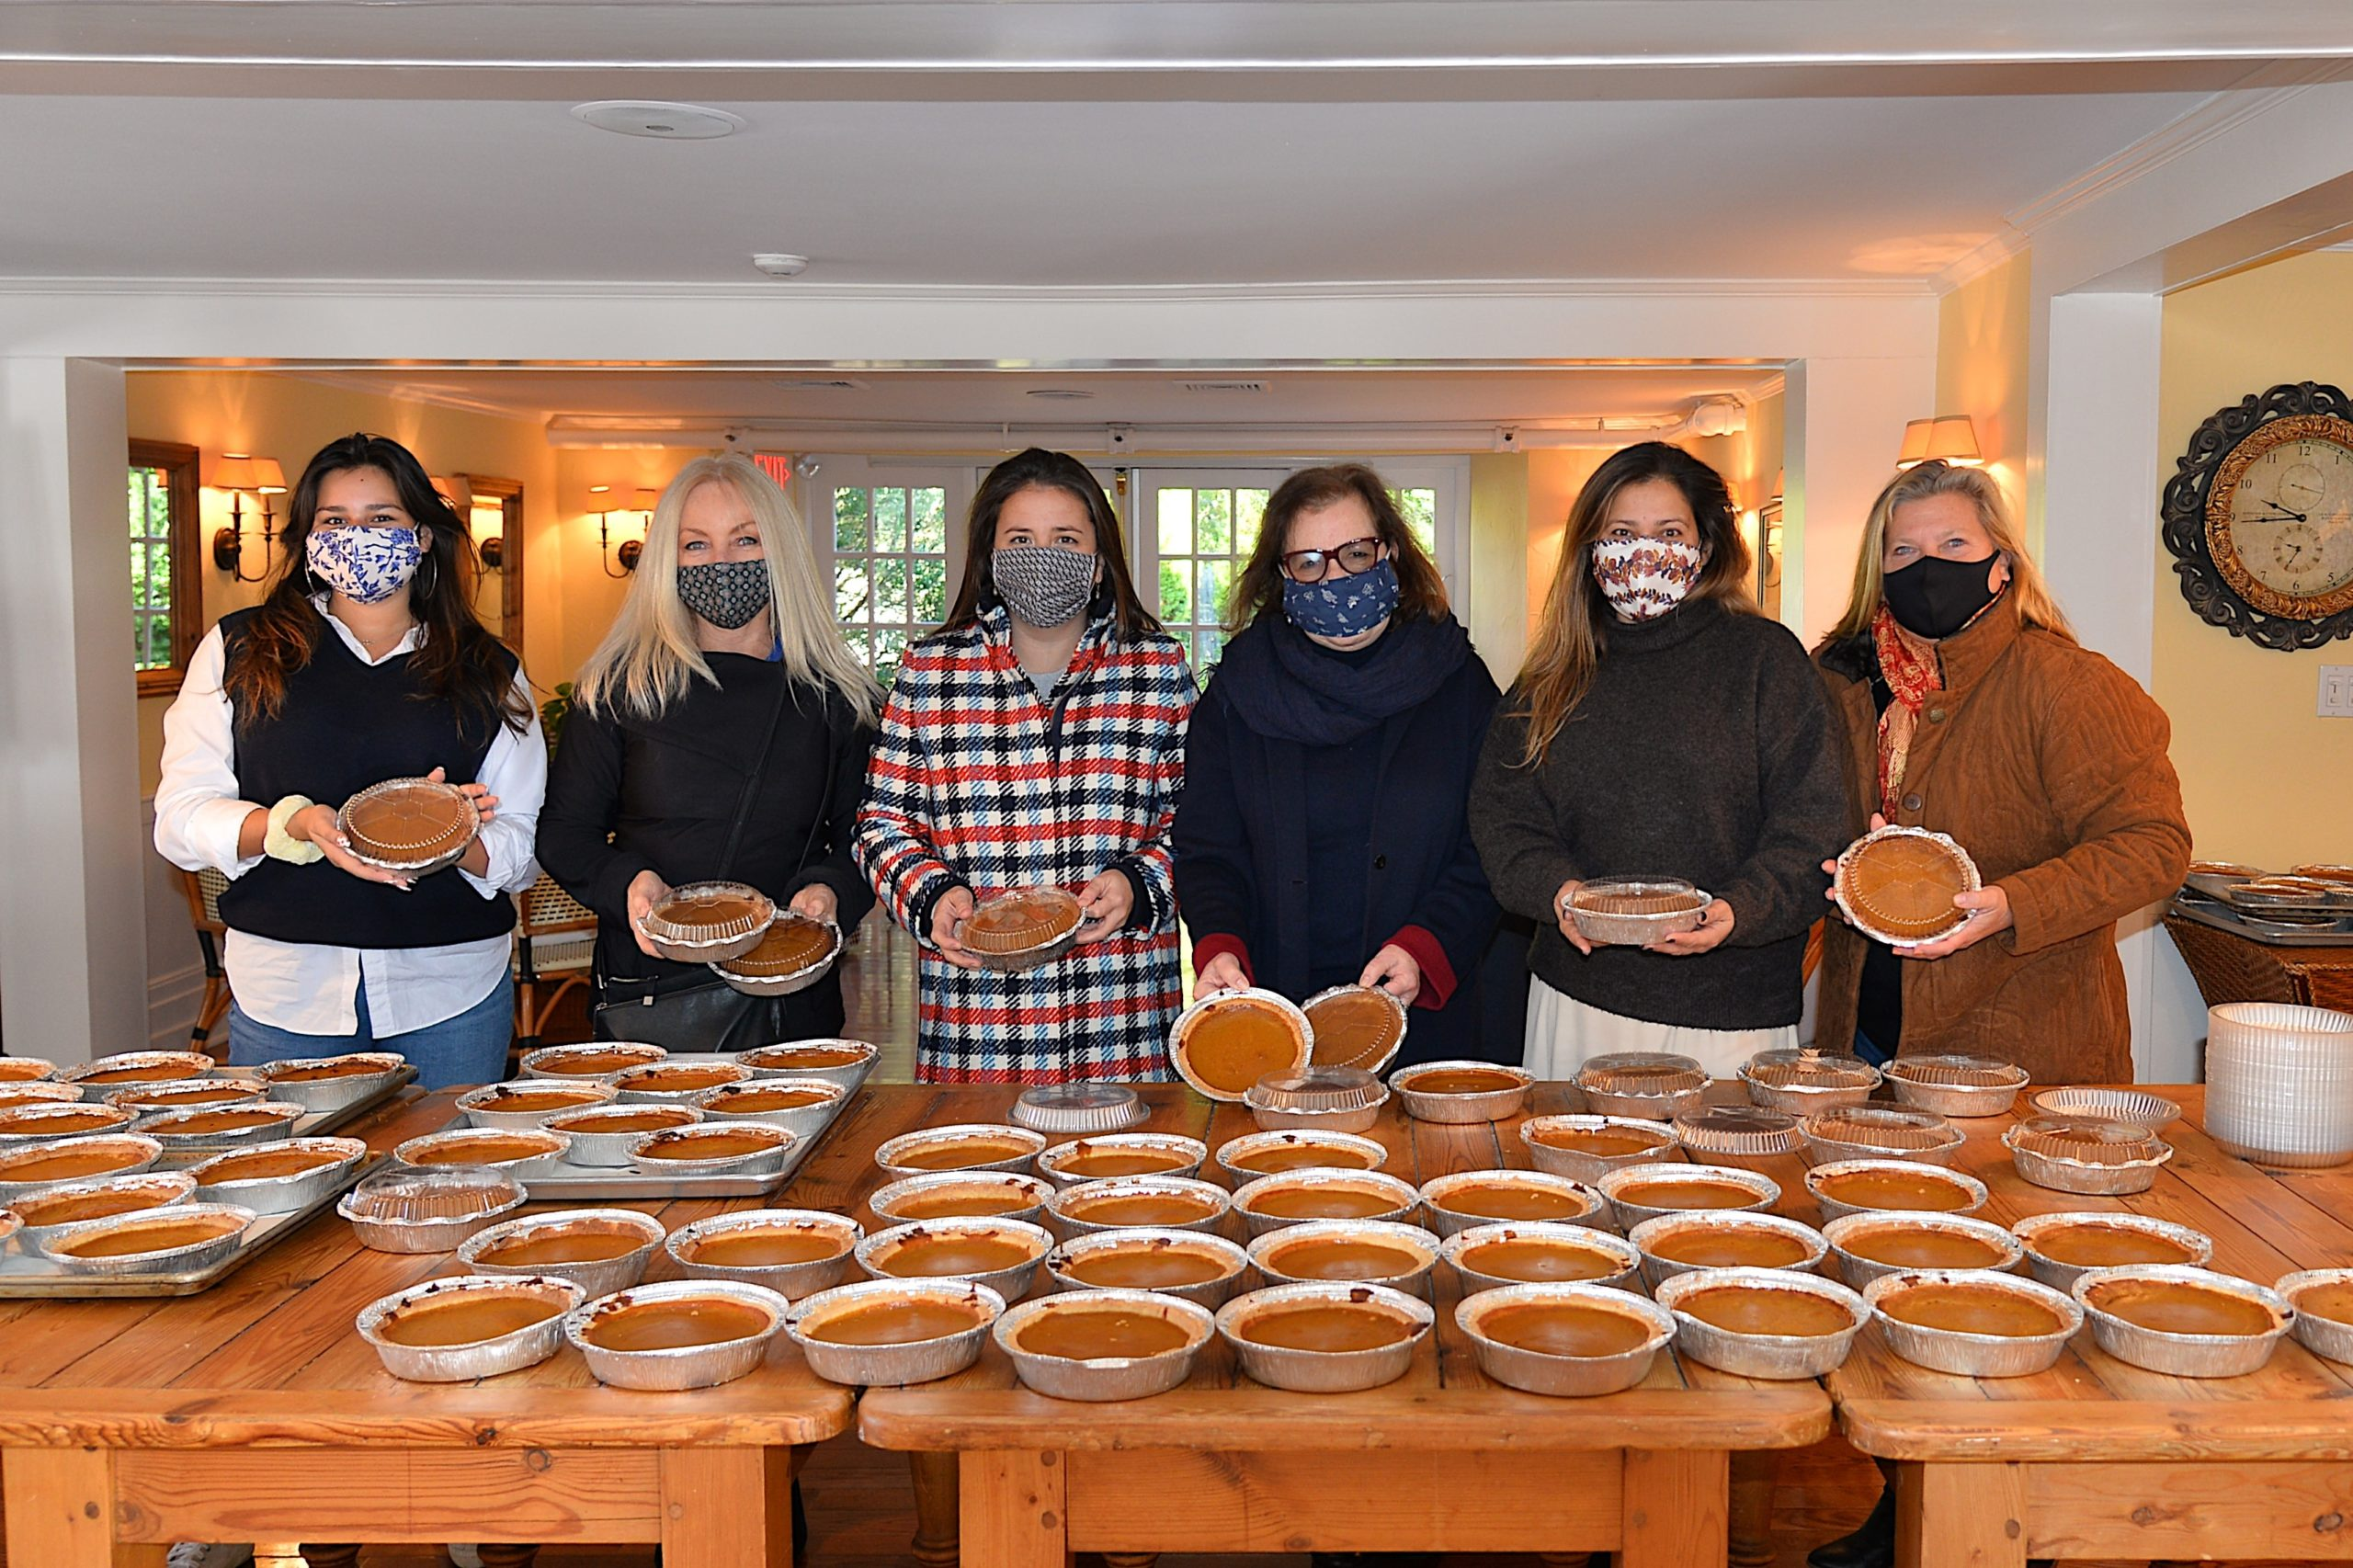 Hannah Rosario, Lisa Larsen, Jenny Lilja, Carol Hayes, Sandra Melendez and Trisha Erickson were part of the baking team that made and delivered 500 pumpkin pies to local food pantries to go with Thanksgiving dinners.